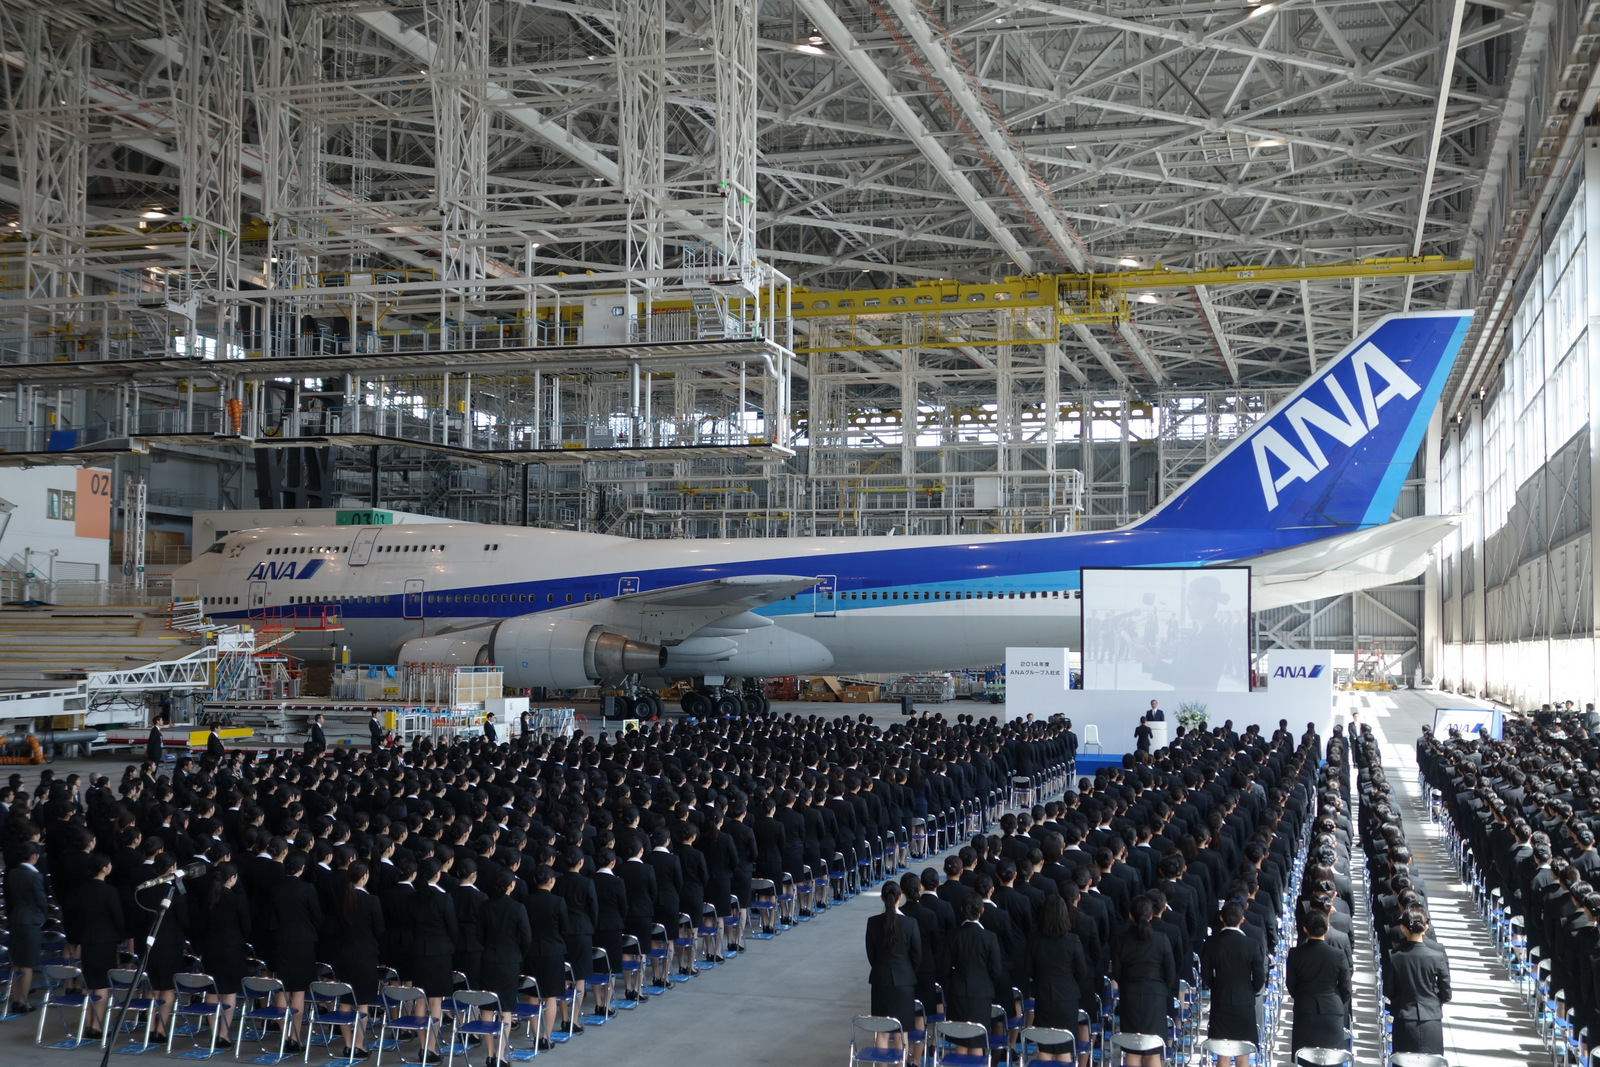 New employee ceremony at ANA's hangar at HND